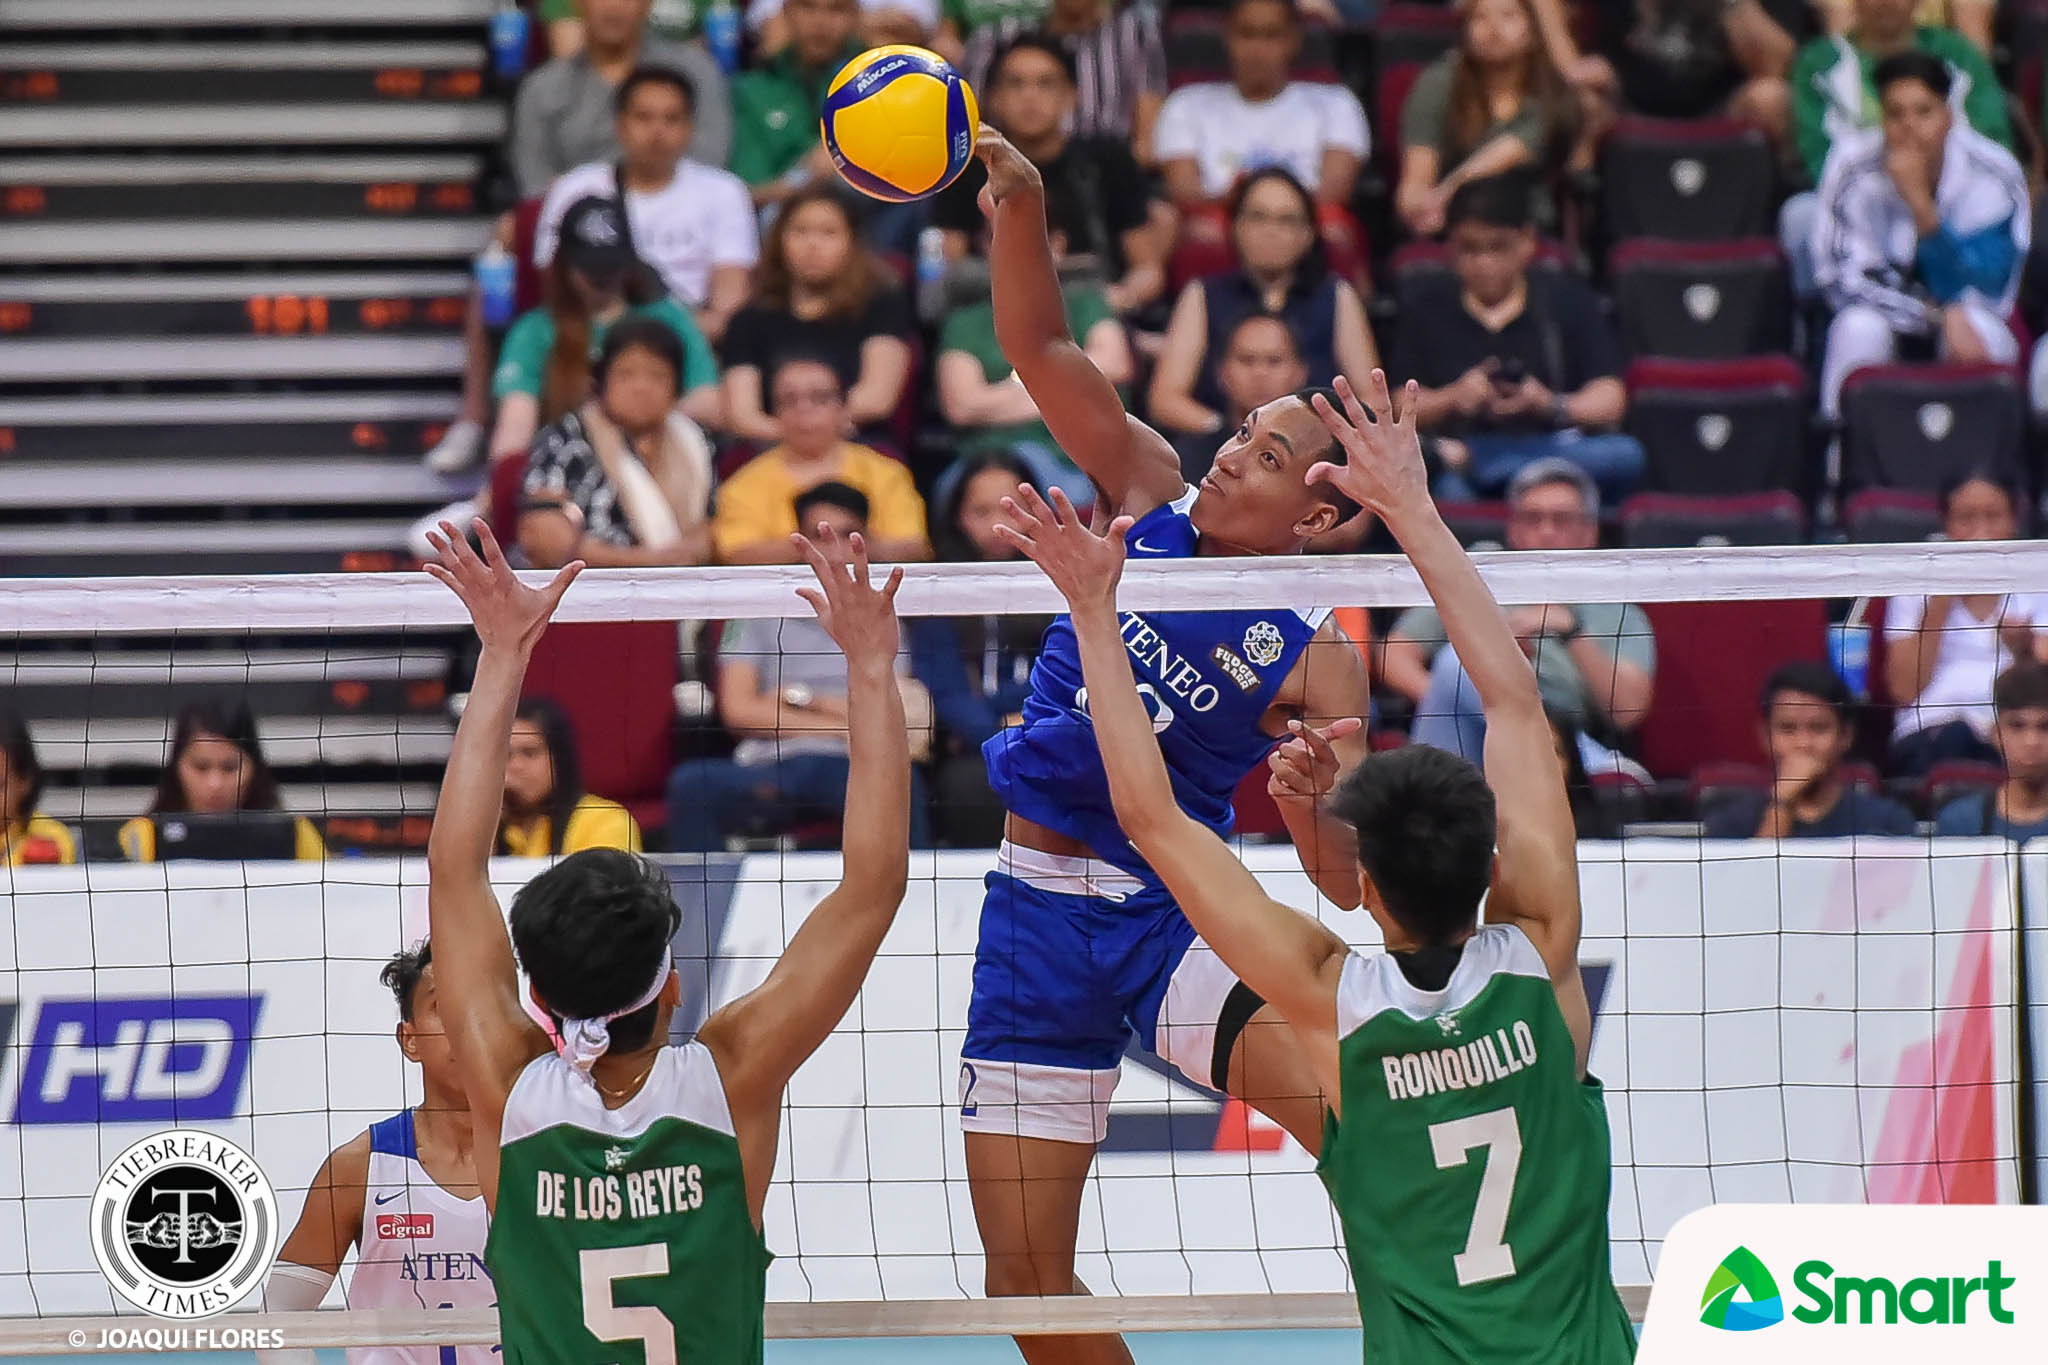 Tiebreaker Times Njigha, Ateneo Blue Eagles soar over La Salle for bounce-back win in UAAP 82 ADMU DLSU News UAAP Volleyball  uaap season 82 men's volleyball UAAP Season 82 Timmy Sto. Tomas Ron Medalla Manuel Sumanguid Kurt Aguilar John Mark Ronquillo DLSU Men's Volleyball Chumason Njigha Ateneo Men's Volleyball Arnold Laniog